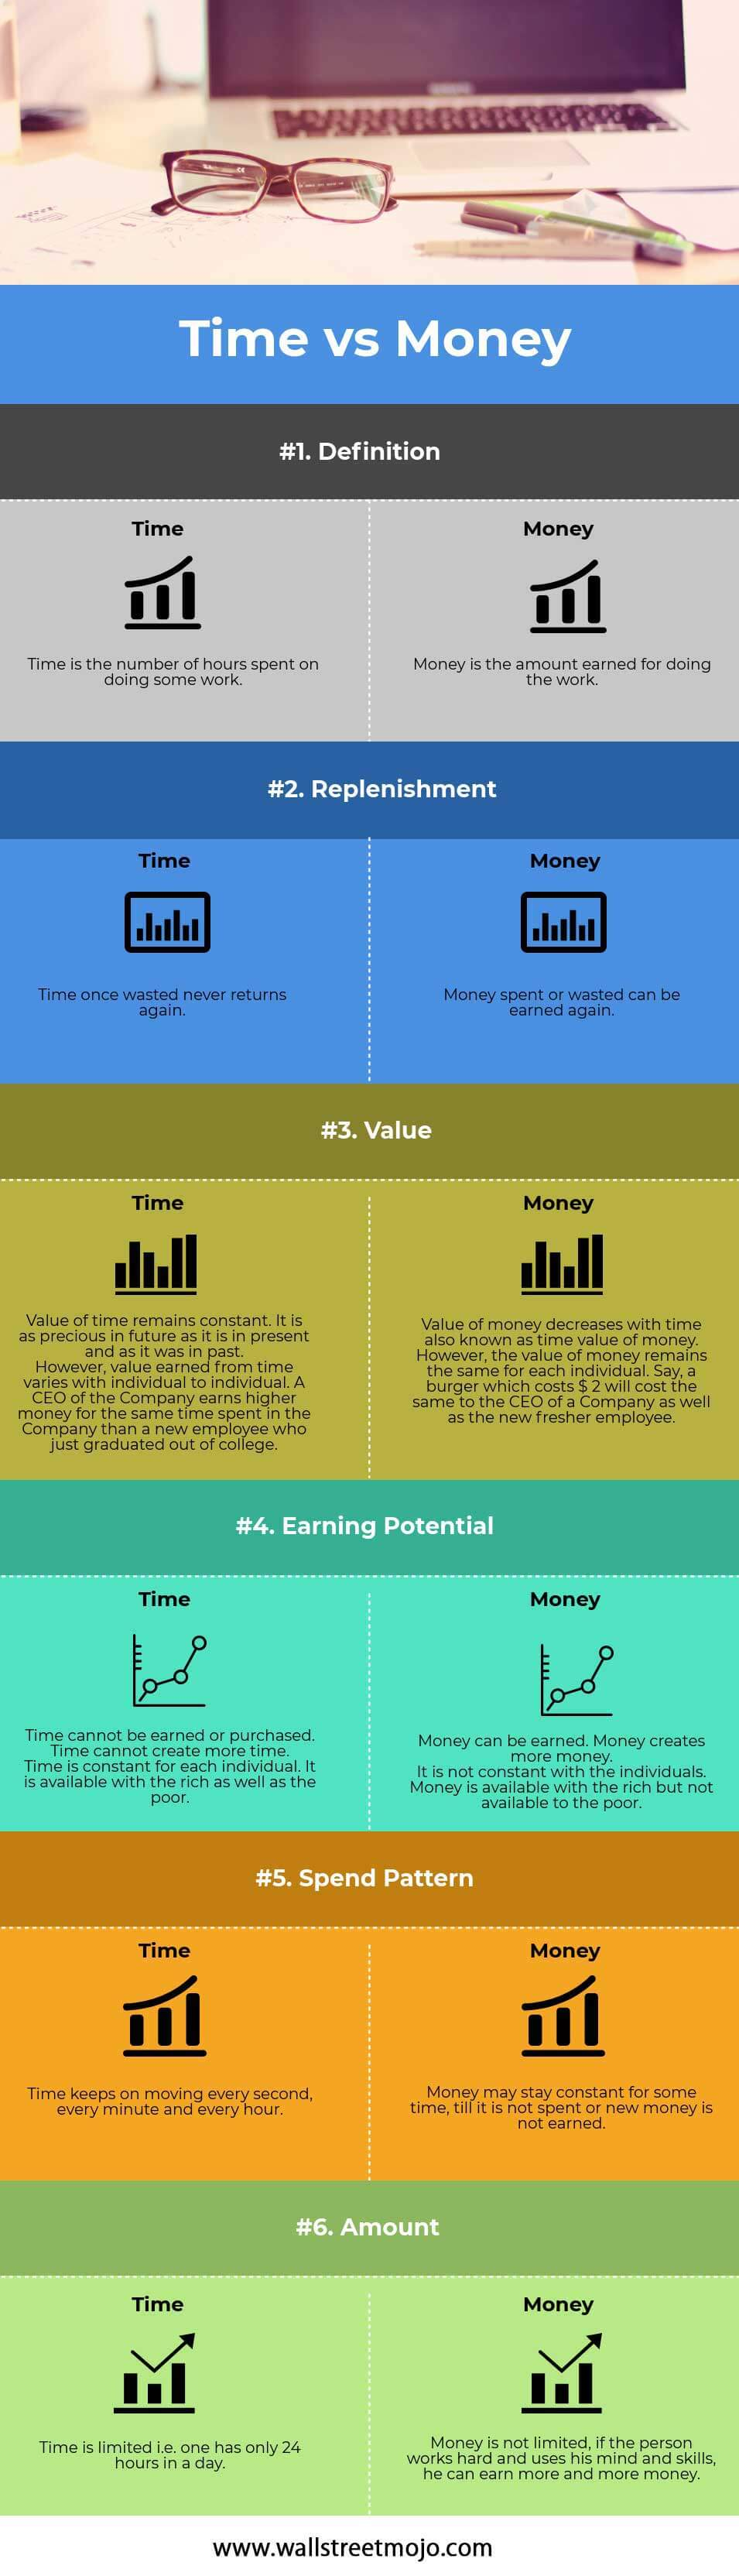 Time-vs-Money-info